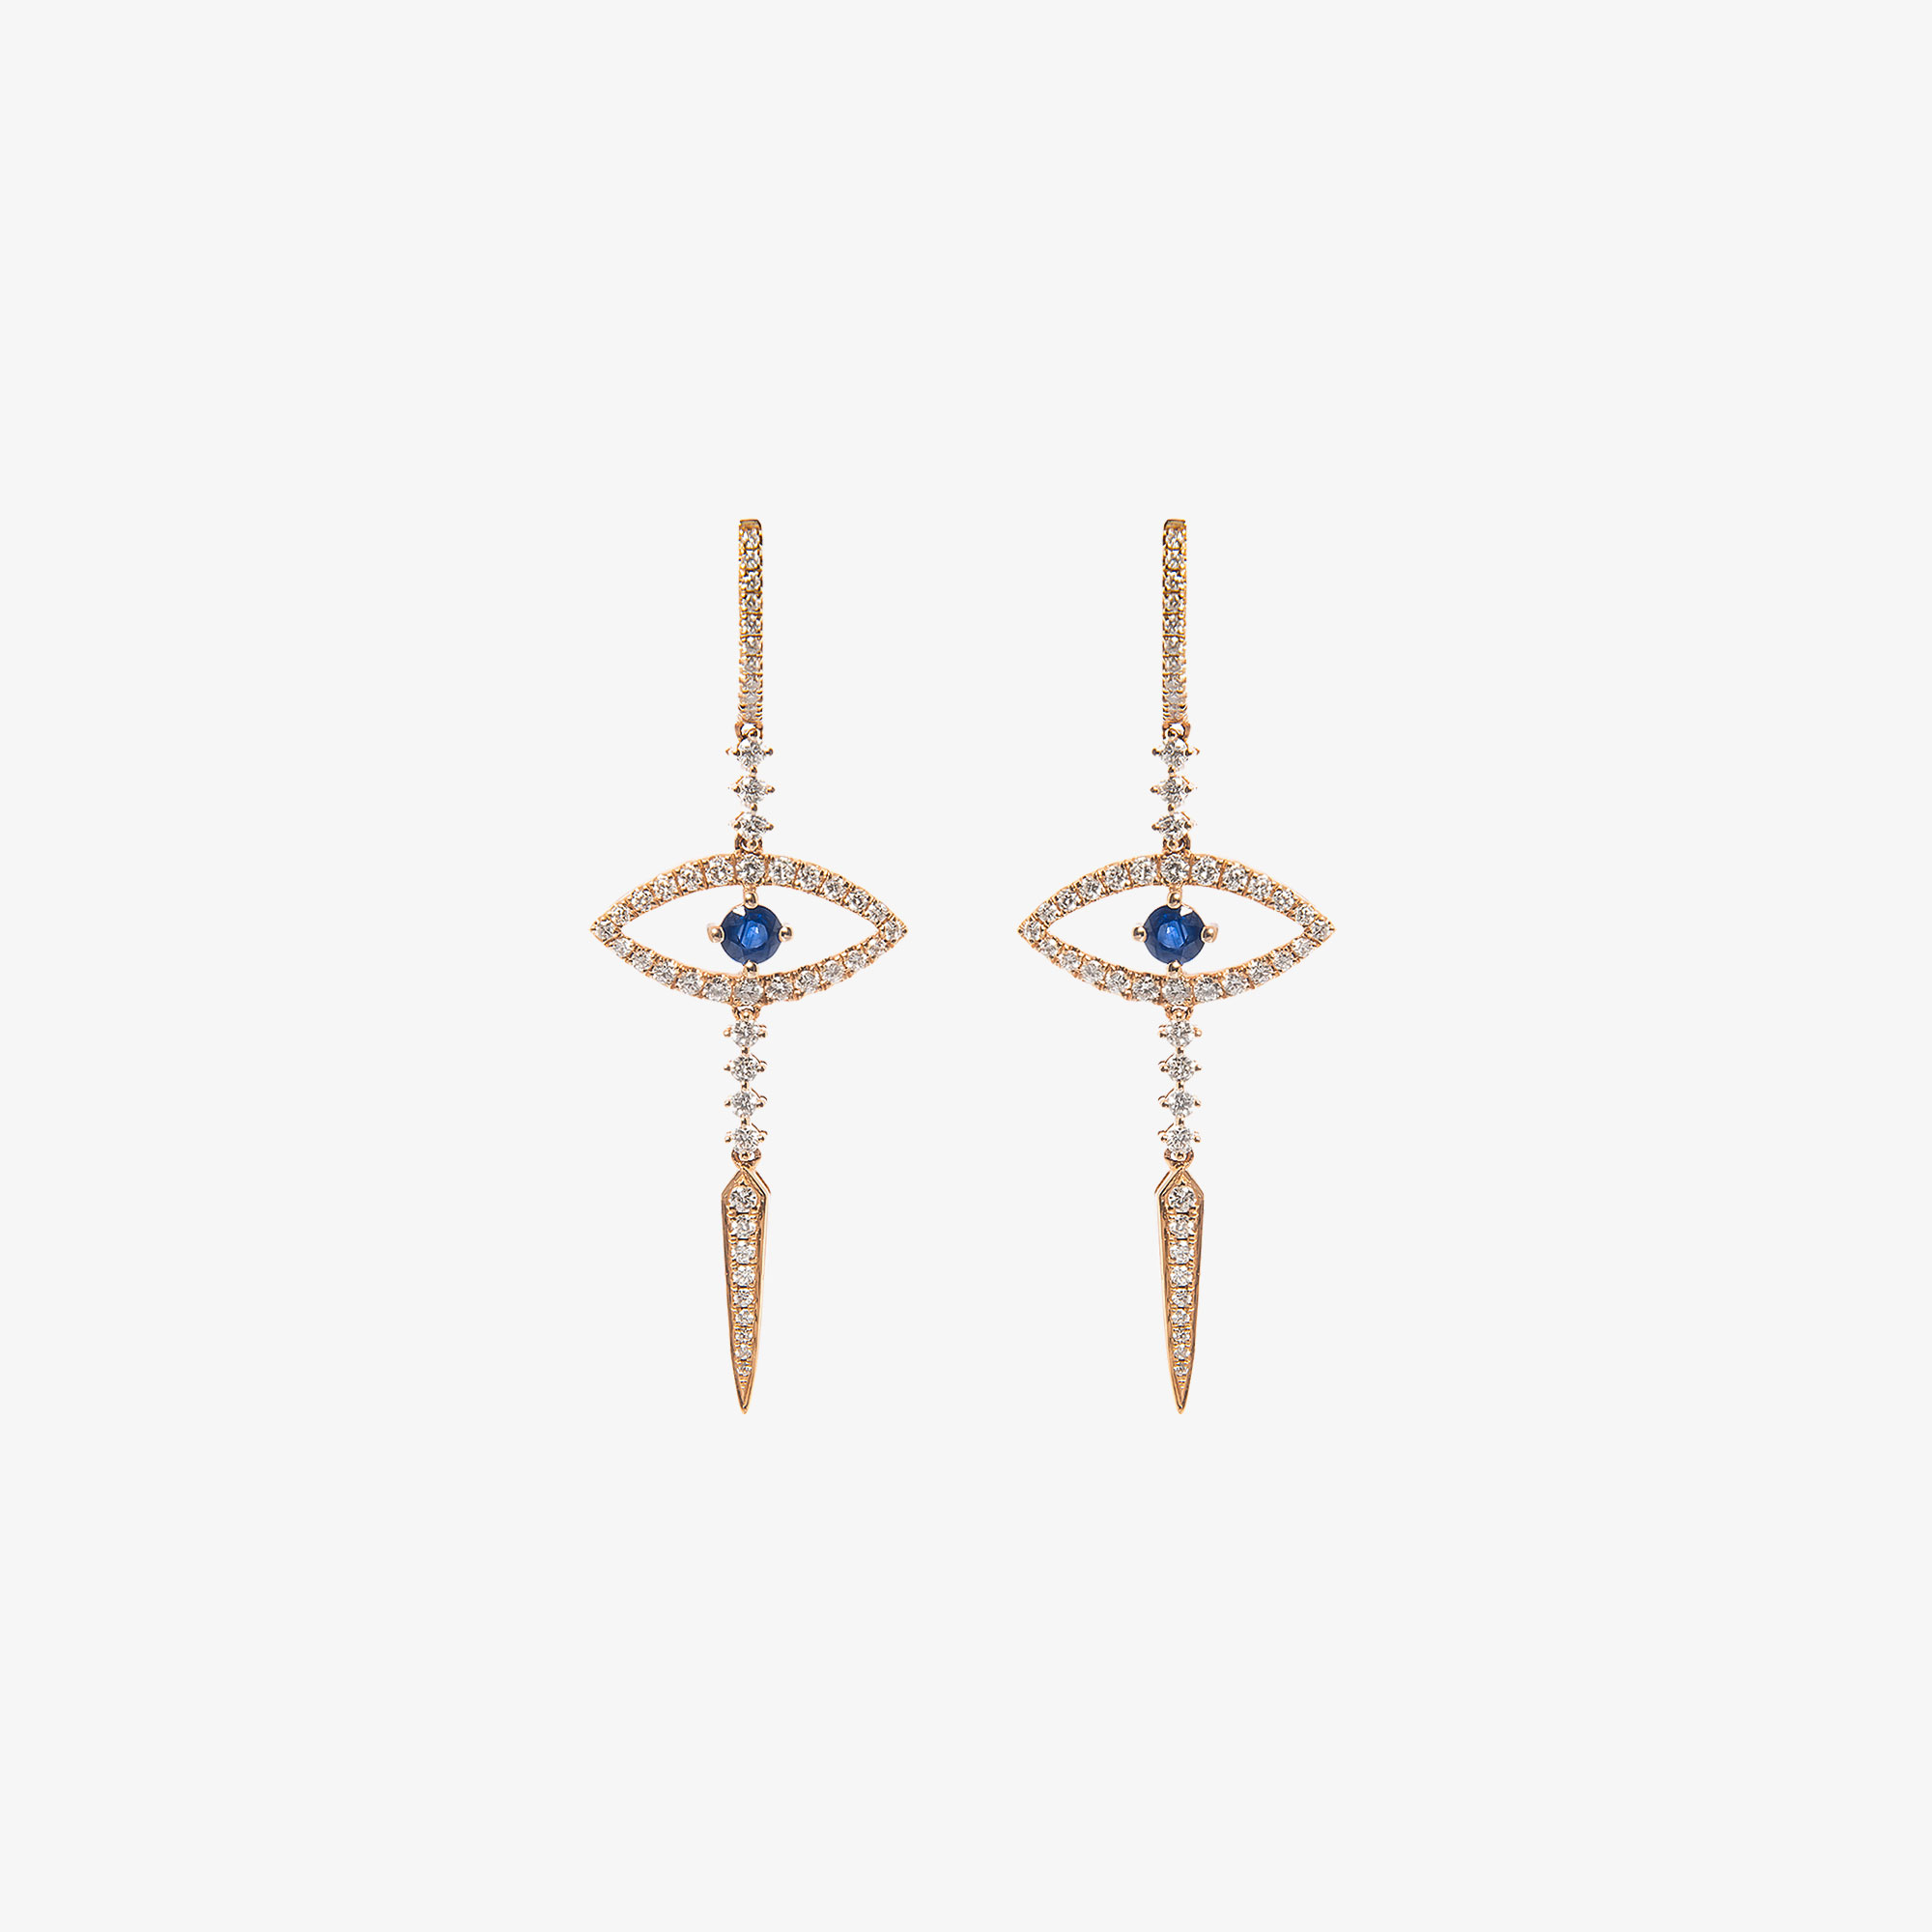 Evil eye earrings with sapphires and diamonds